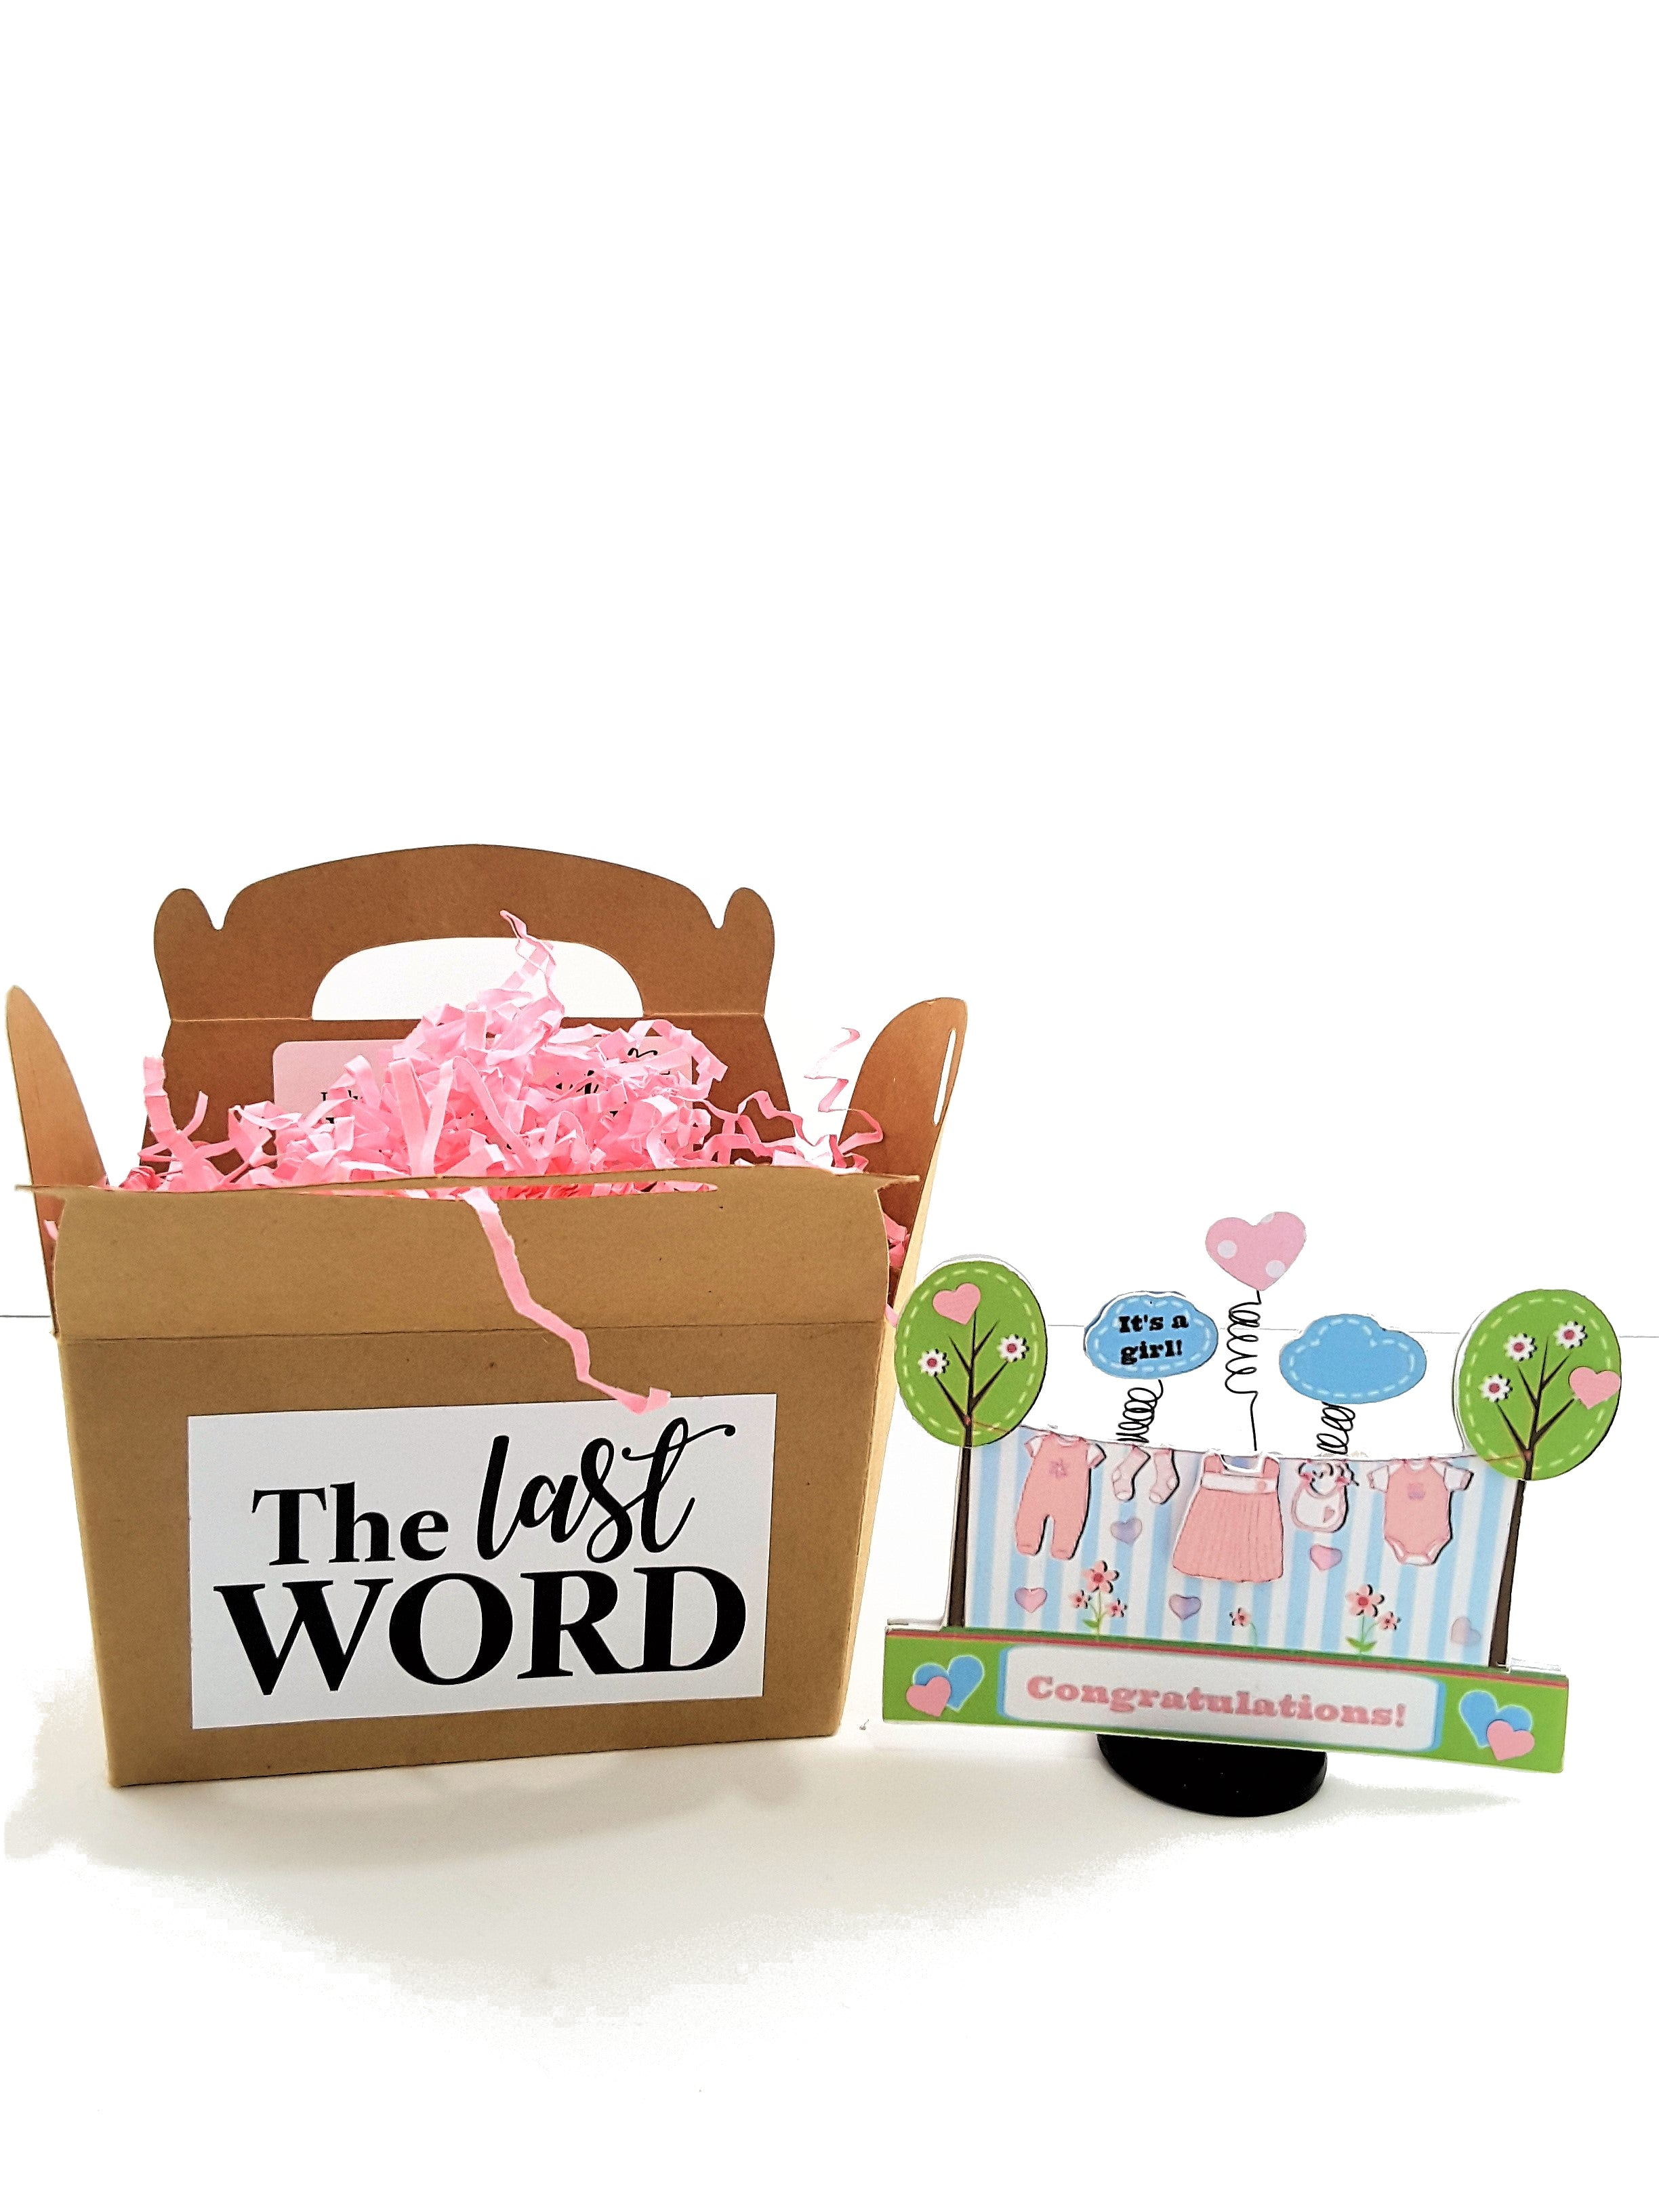 BABY GIRL CONGRATULATIONS 3D GREETING CARD - It's a Girl!